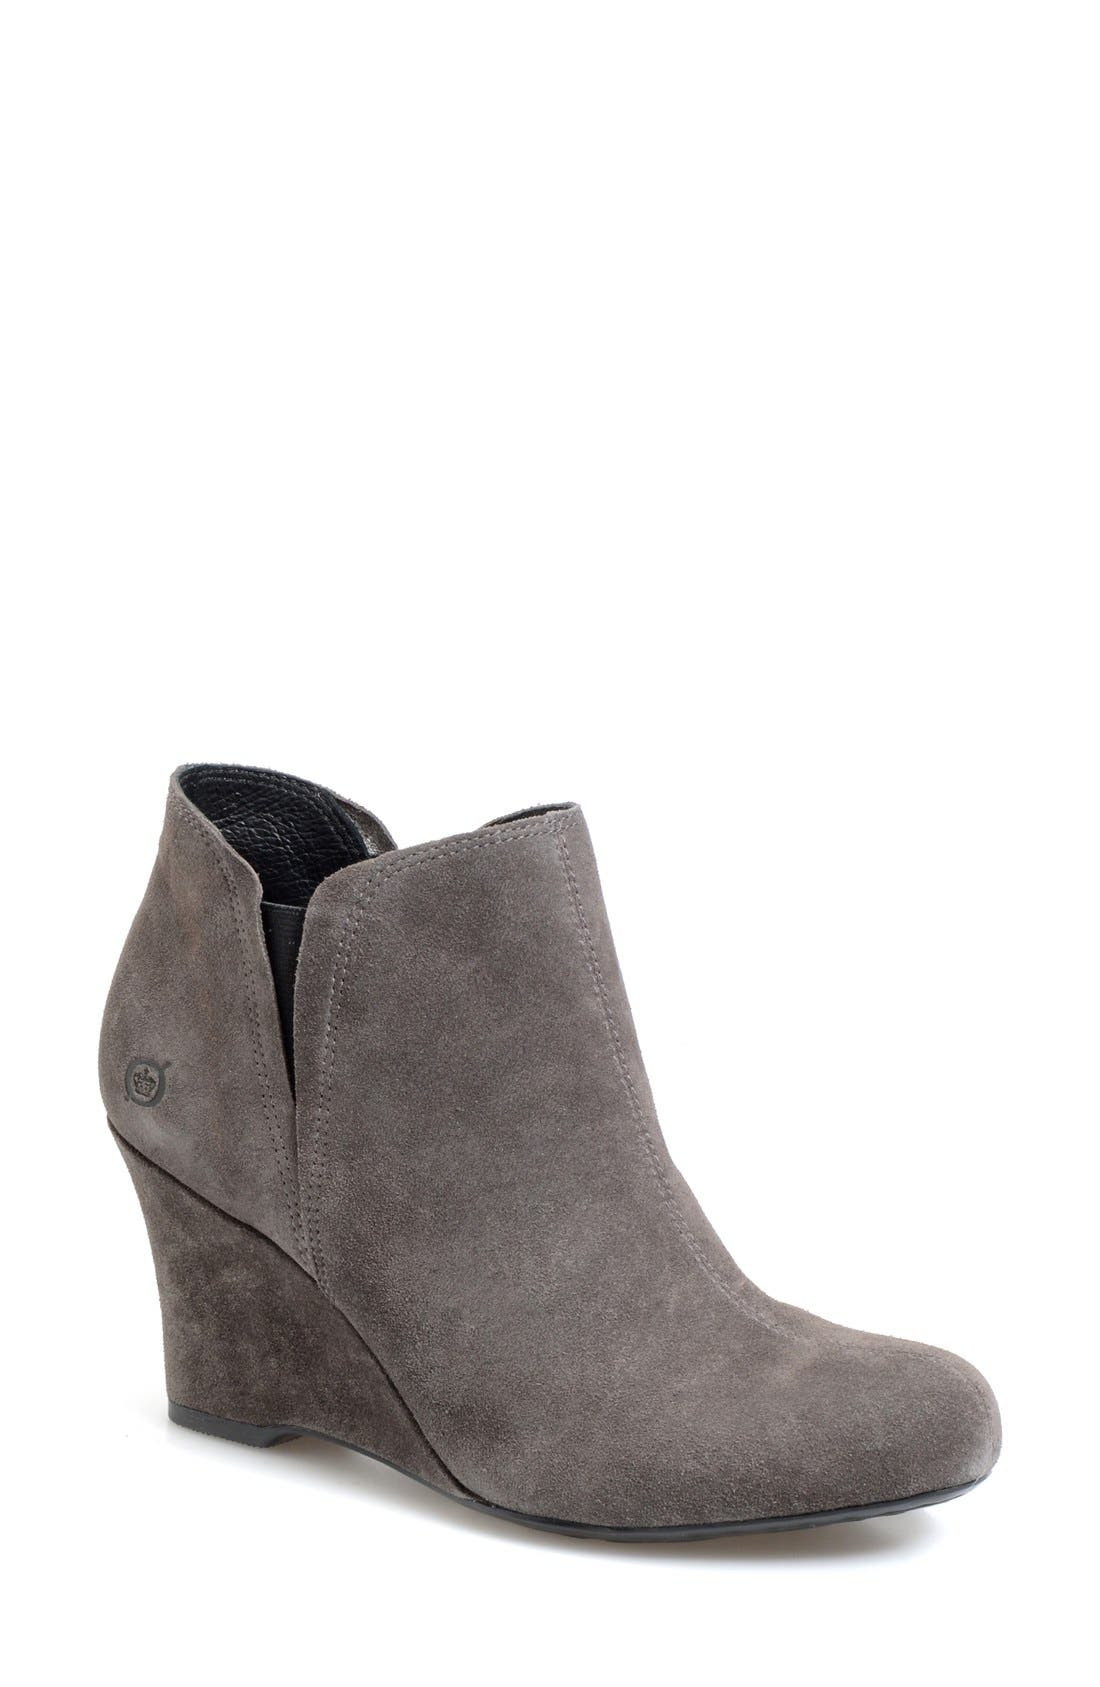 Alternate Image 1 Selected - Børn 'Faylan' Wedge Boot (Women)